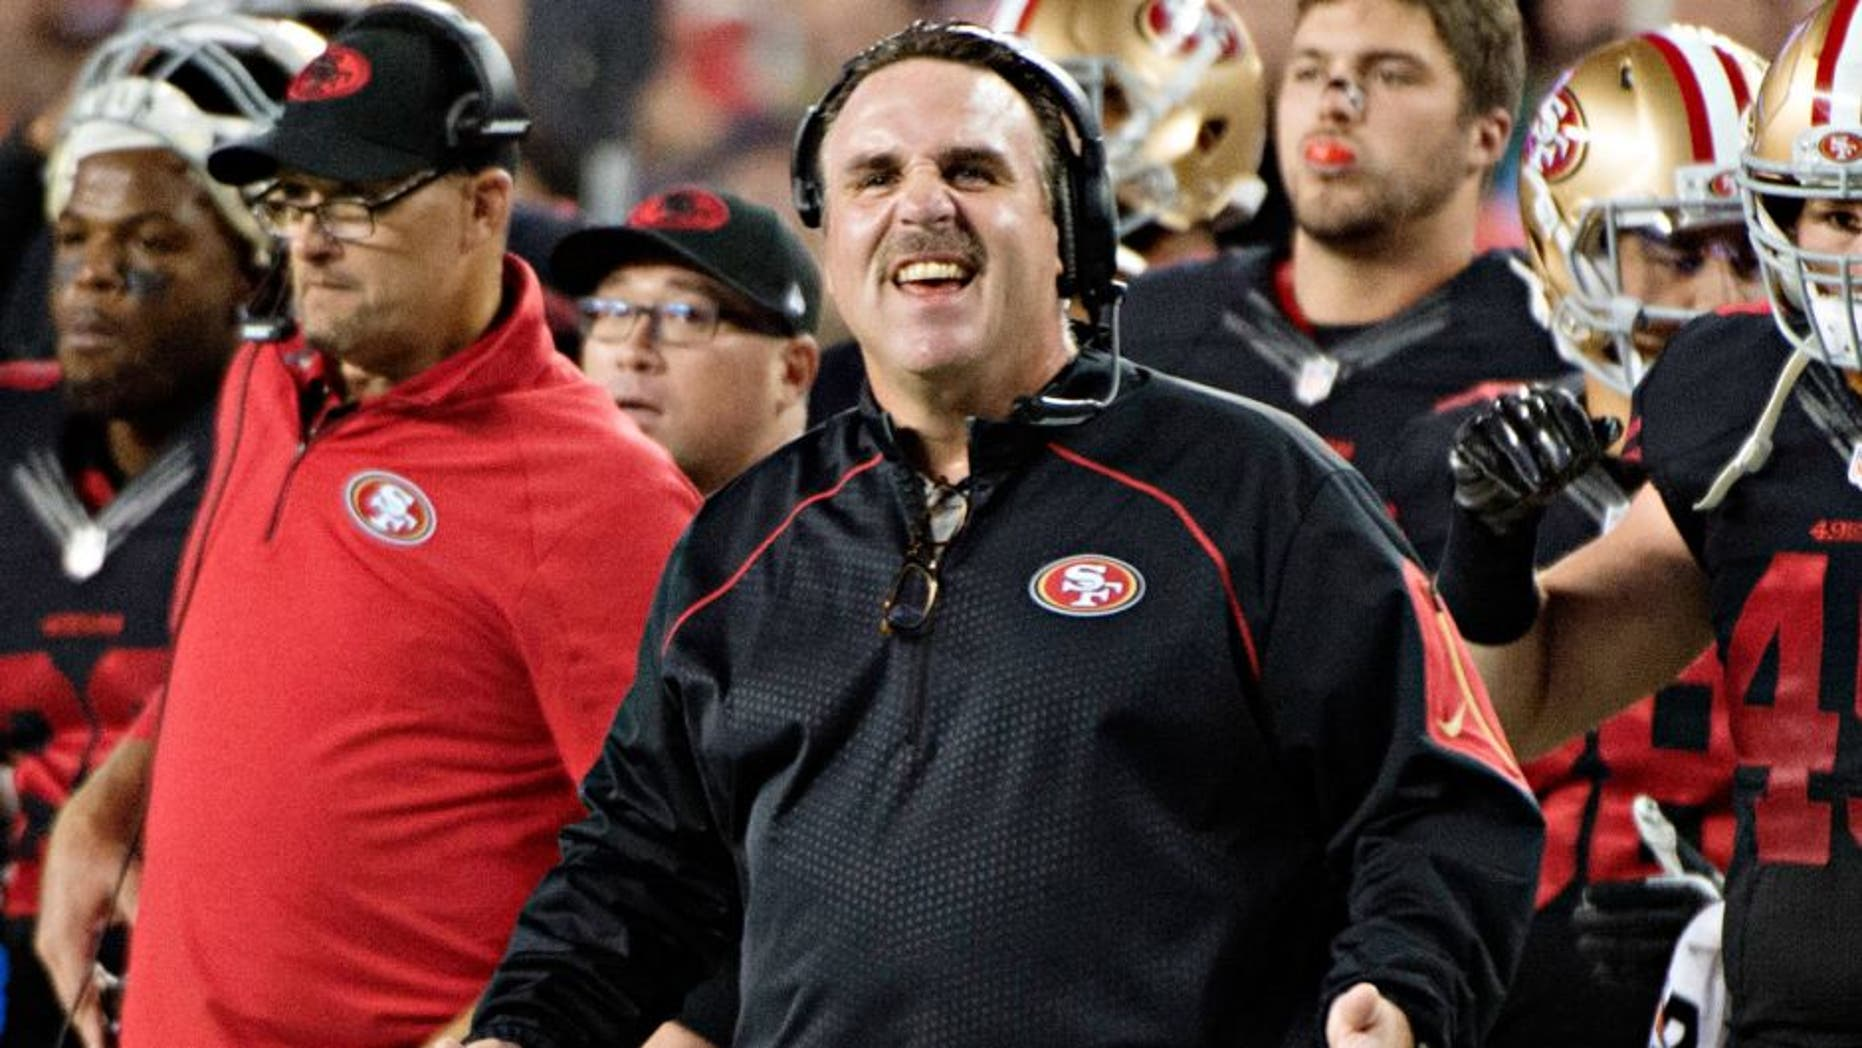 September 14, 2015; Santa Clara, CA, USA; San Francisco 49ers head coach Jim Tomsula reacts against the Minnesota Vikings during the first quarter at Levi's Stadium. Mandatory Credit: Kyle Terada-USA TODAY Sports